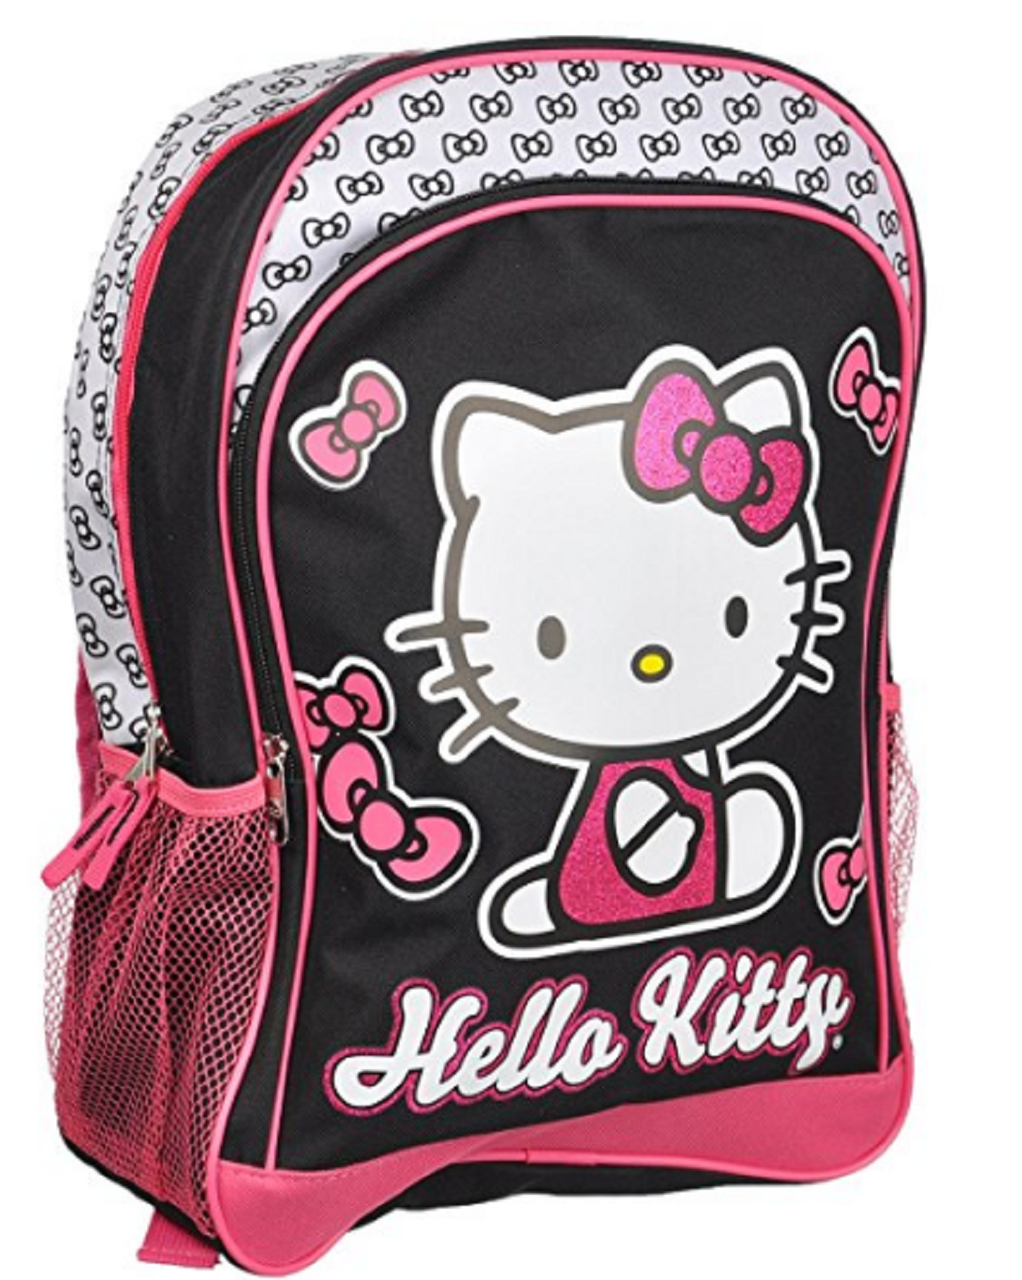 10172a466de1 Backpack - Hello Kitty - Large 16 Inches - Black and Glittery